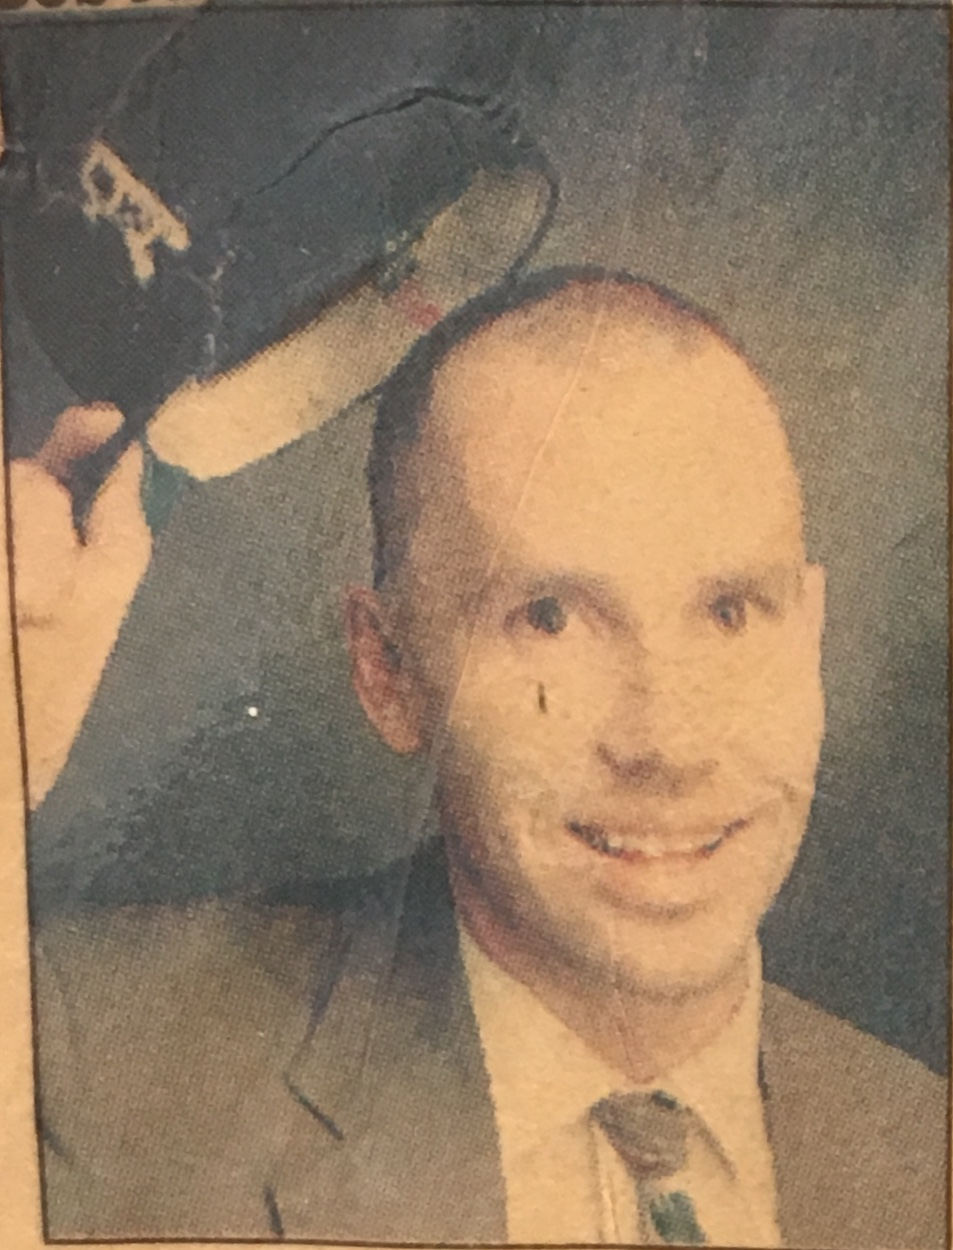 Philip Roiko in 1993 after he shaved his head in celebration for the girls soccer team winning the state championship.